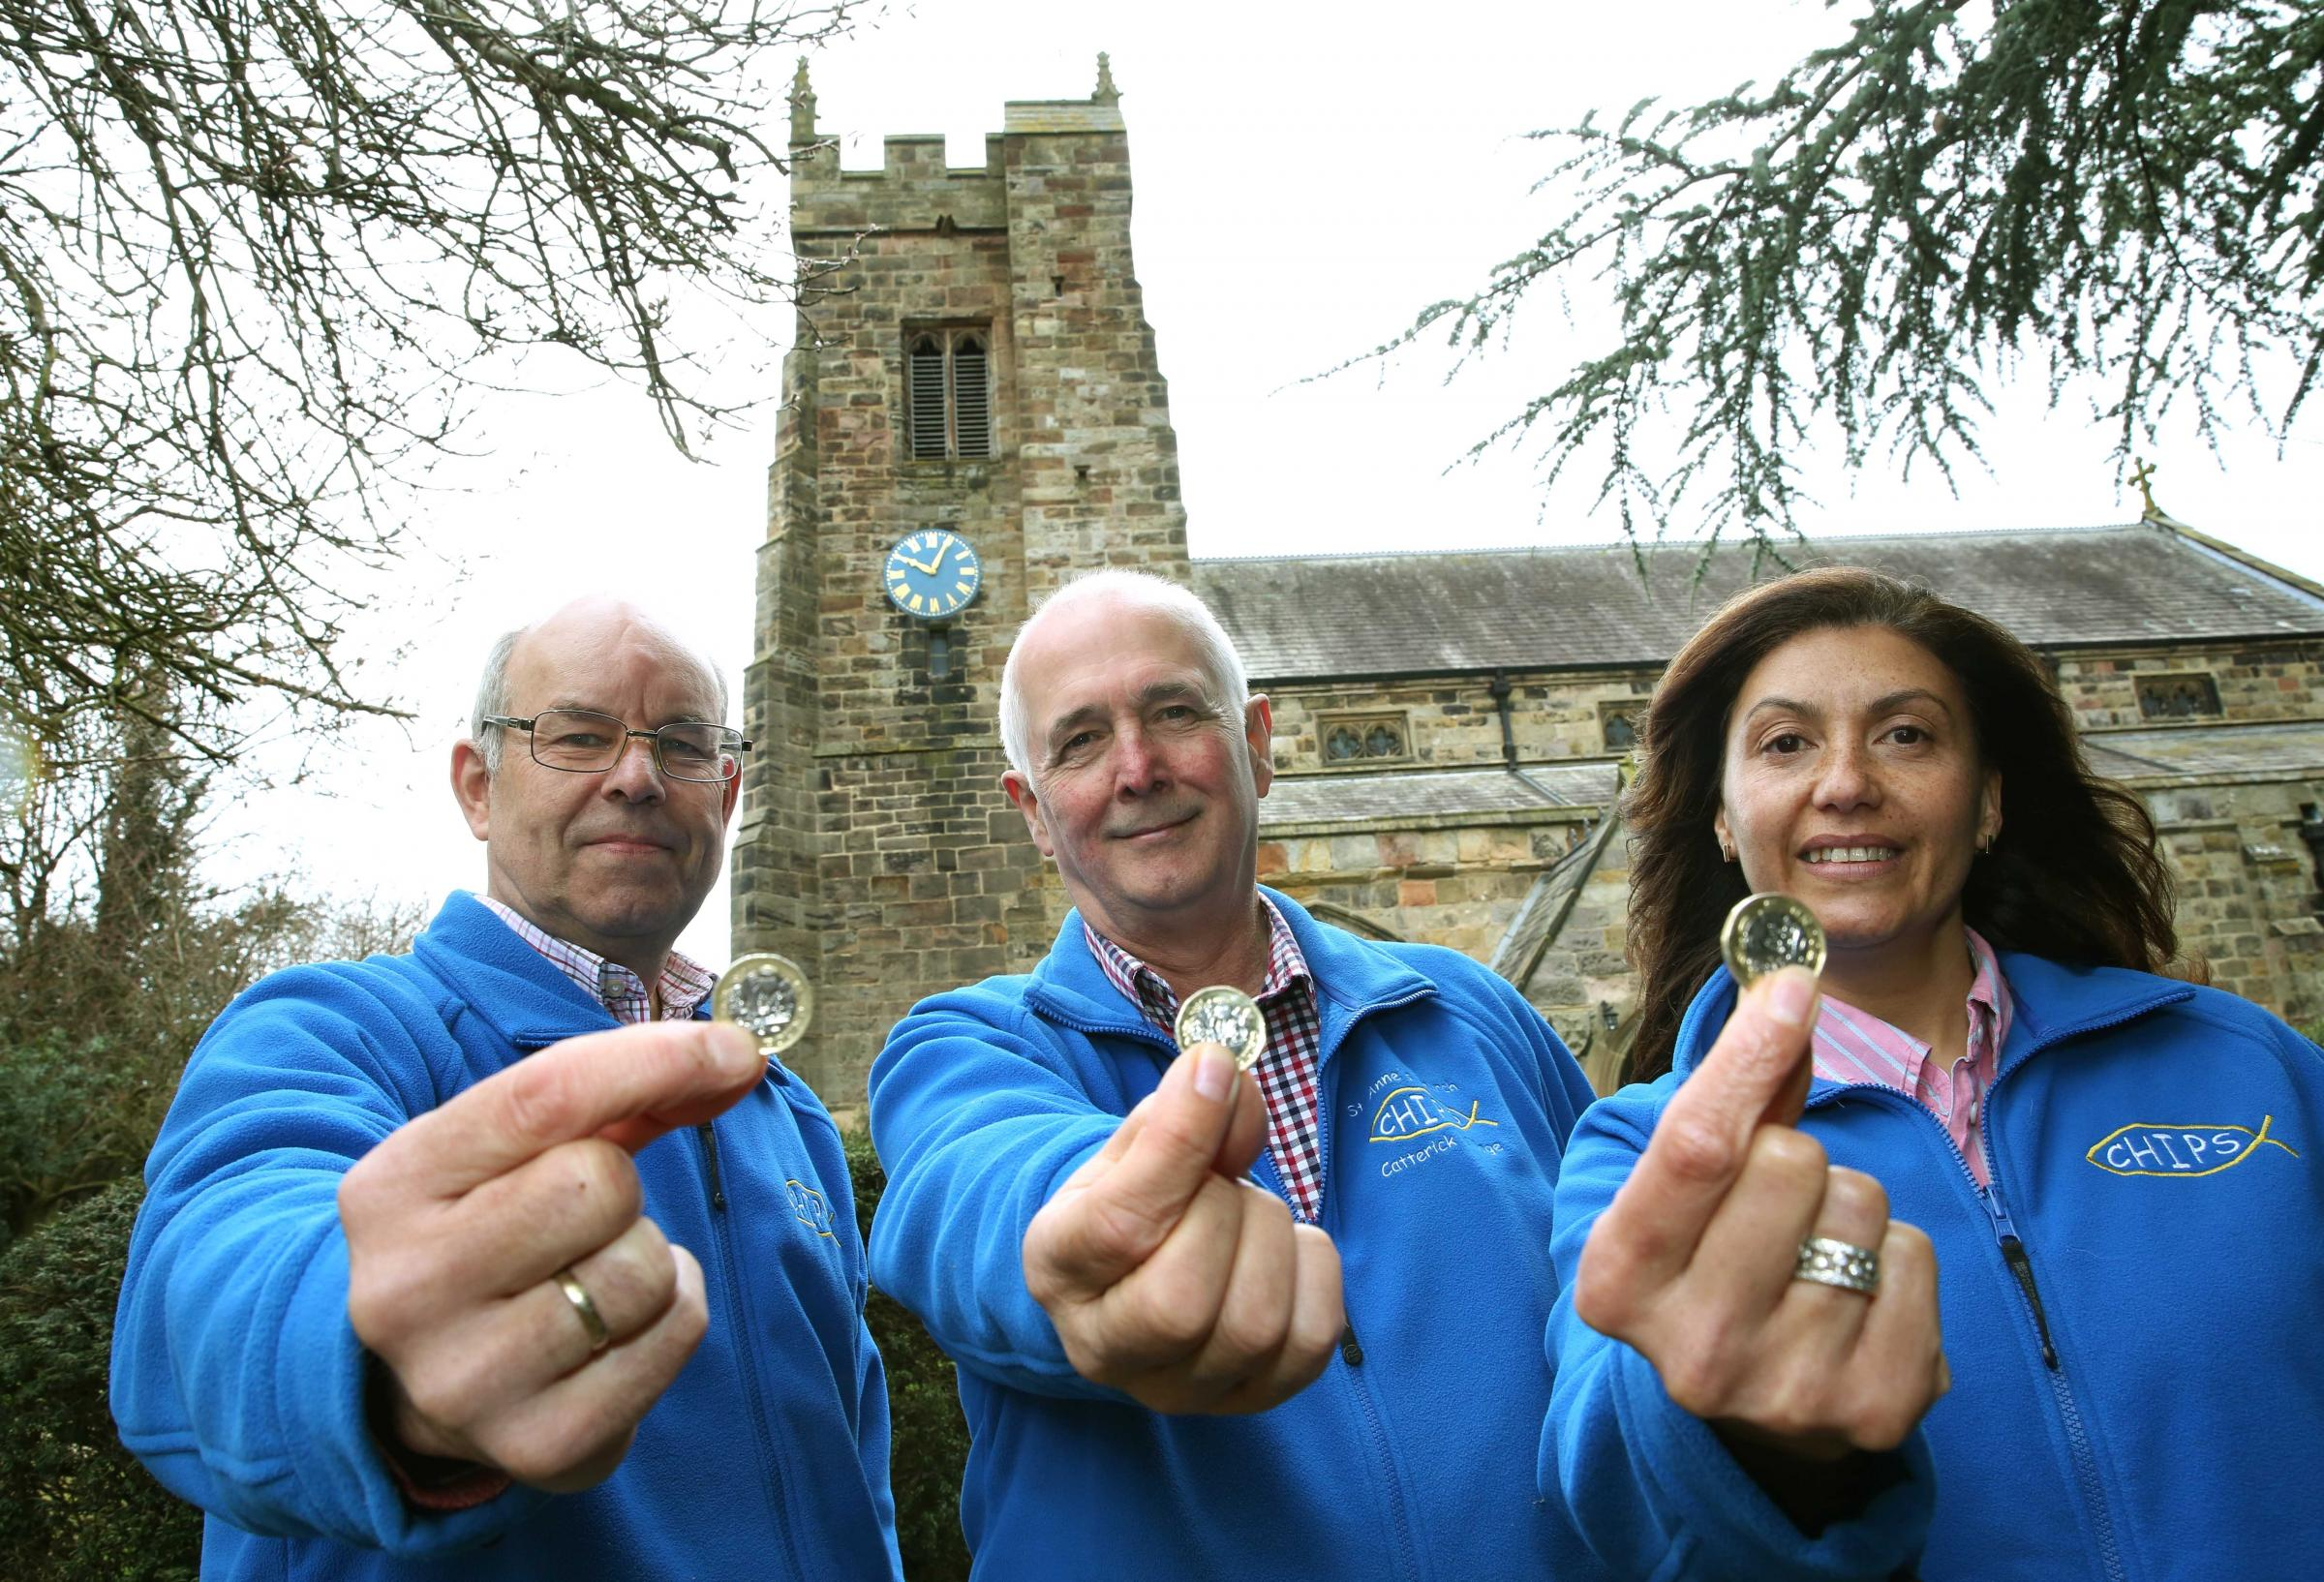 COSTS: Graham Bannister, Martin Greaves and Lana Morris in appeal for £1 per week from parishioners at St Anne's Church, Catterick village to cover running costs of the church. Picture: Richard Doughty Photography